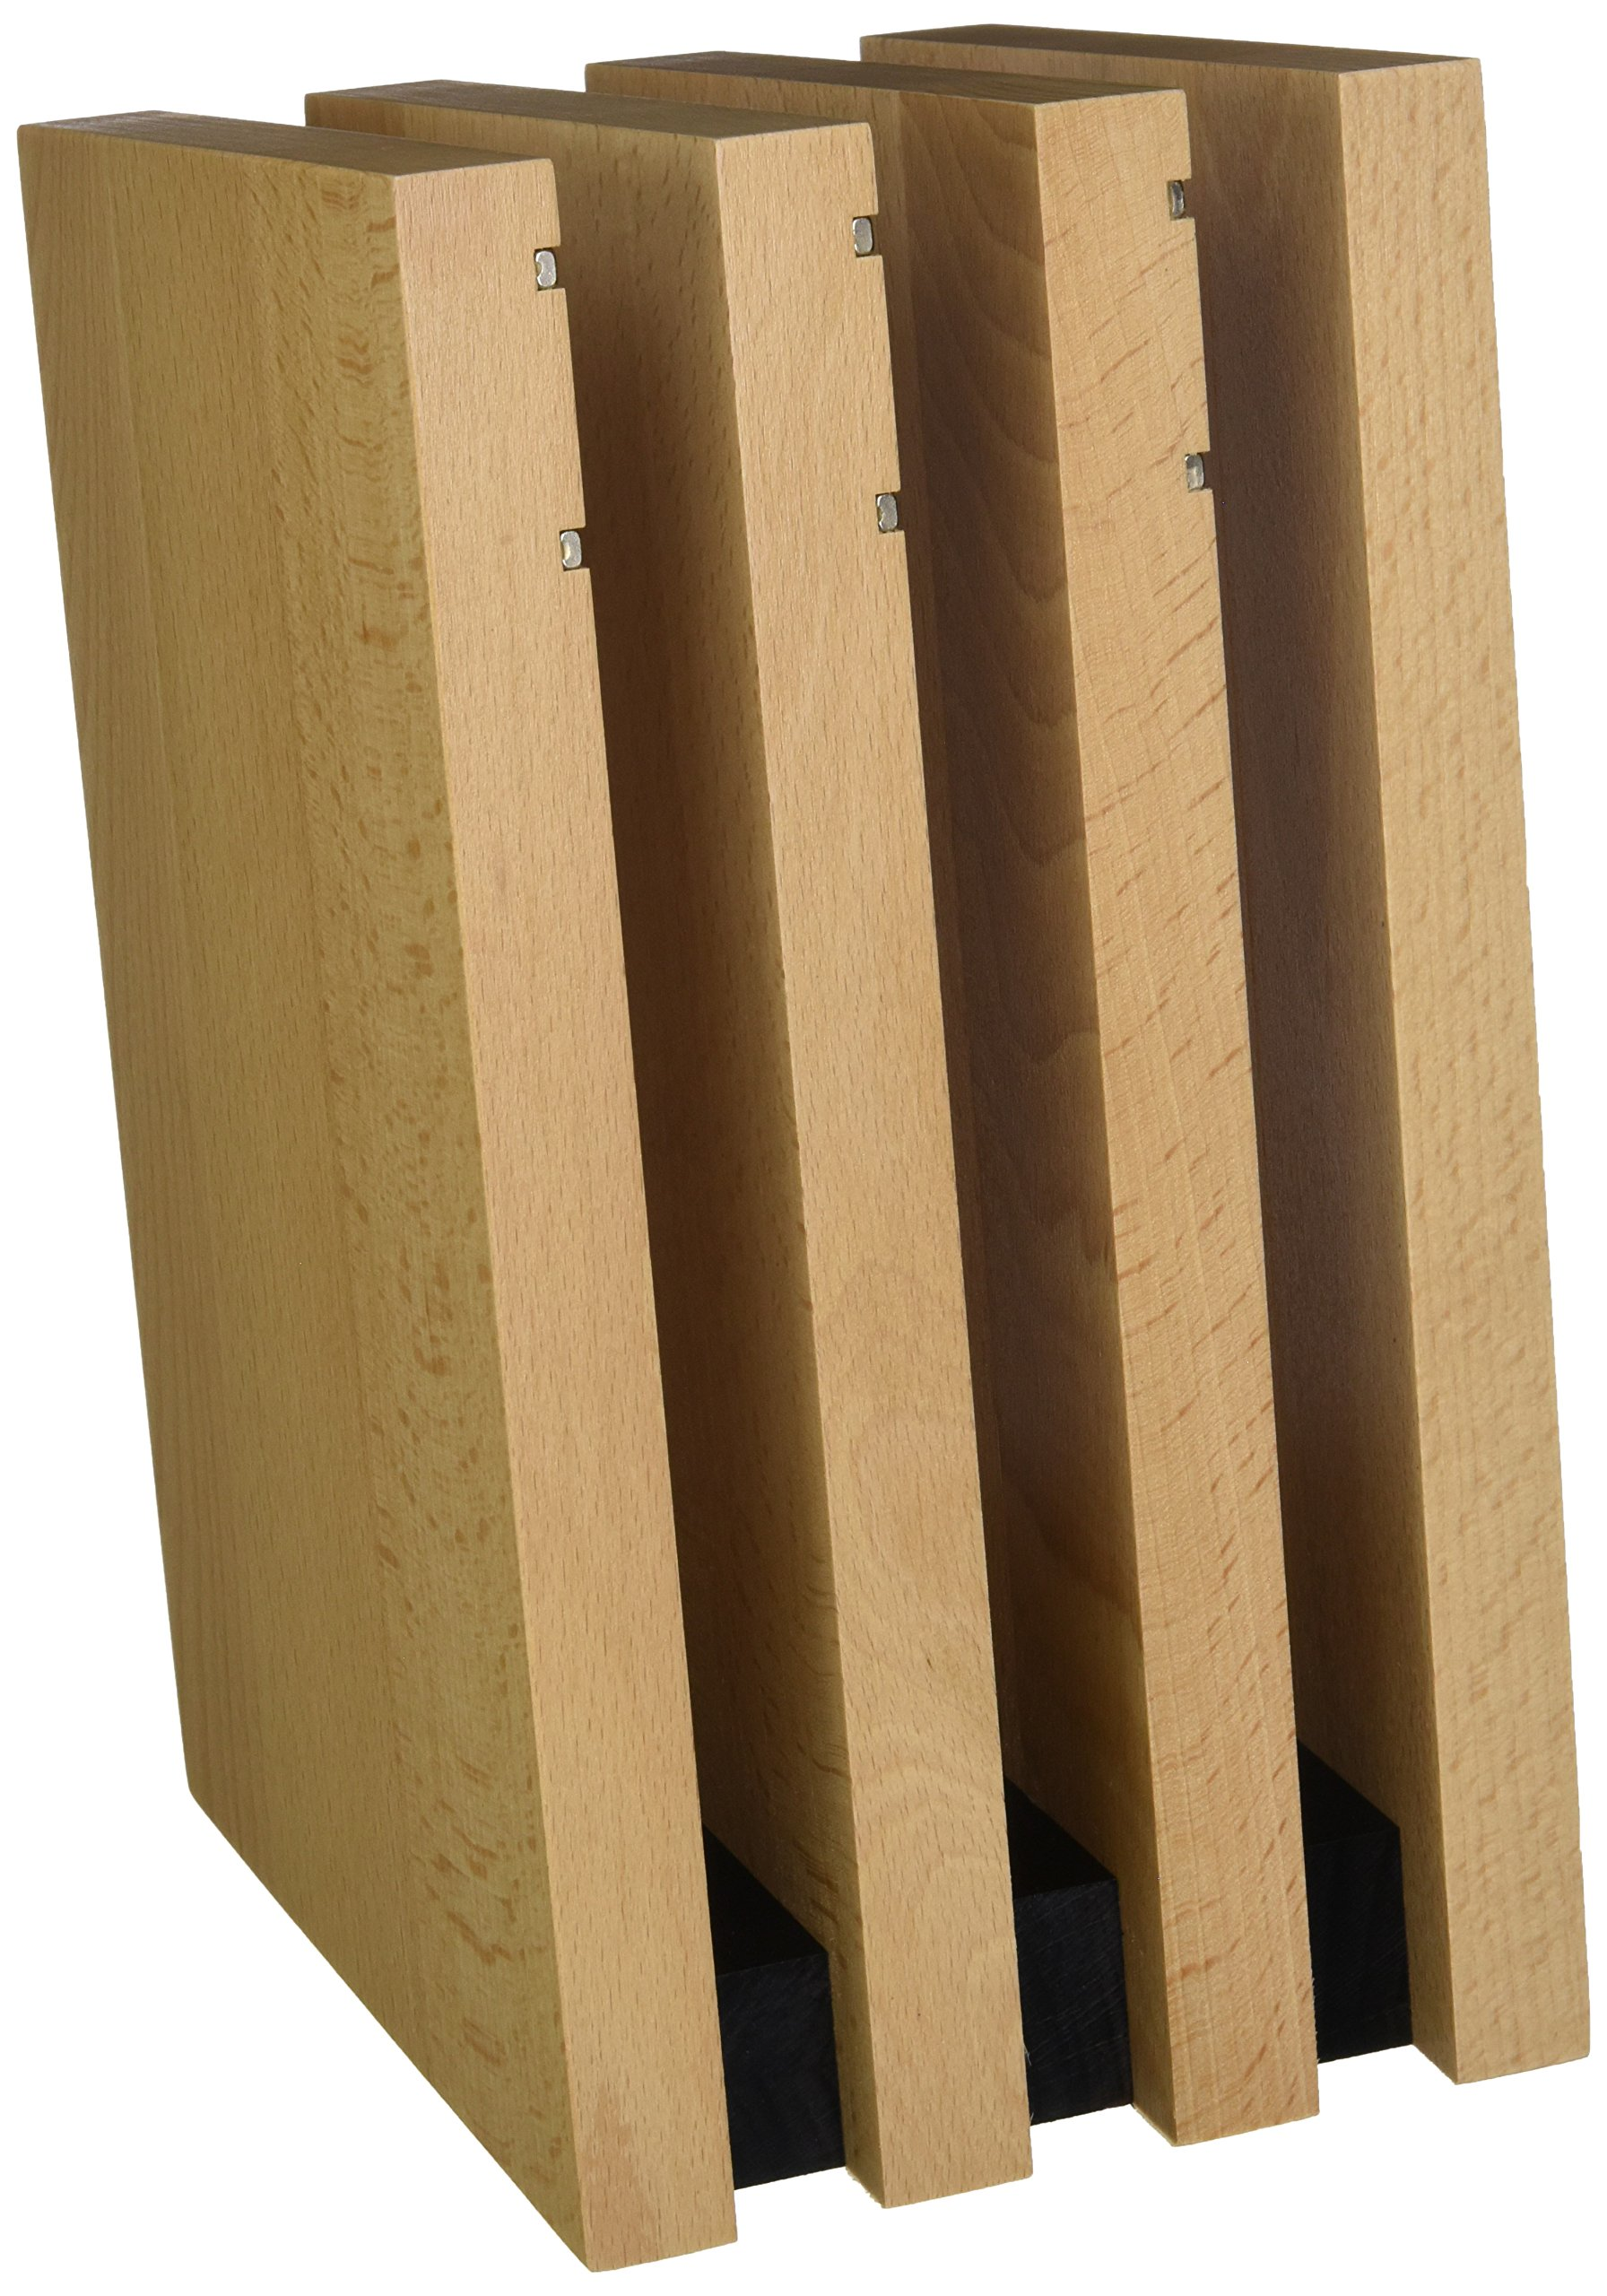 Artelegno Magnetic Knife Block Solid Beech Wood 4 Panel, Luxurious Italian Milano Collection by Master Craftsmen Displays Blades up to 9 Knives Elegantly, Eco-friendly, Natural Finish Black Accents